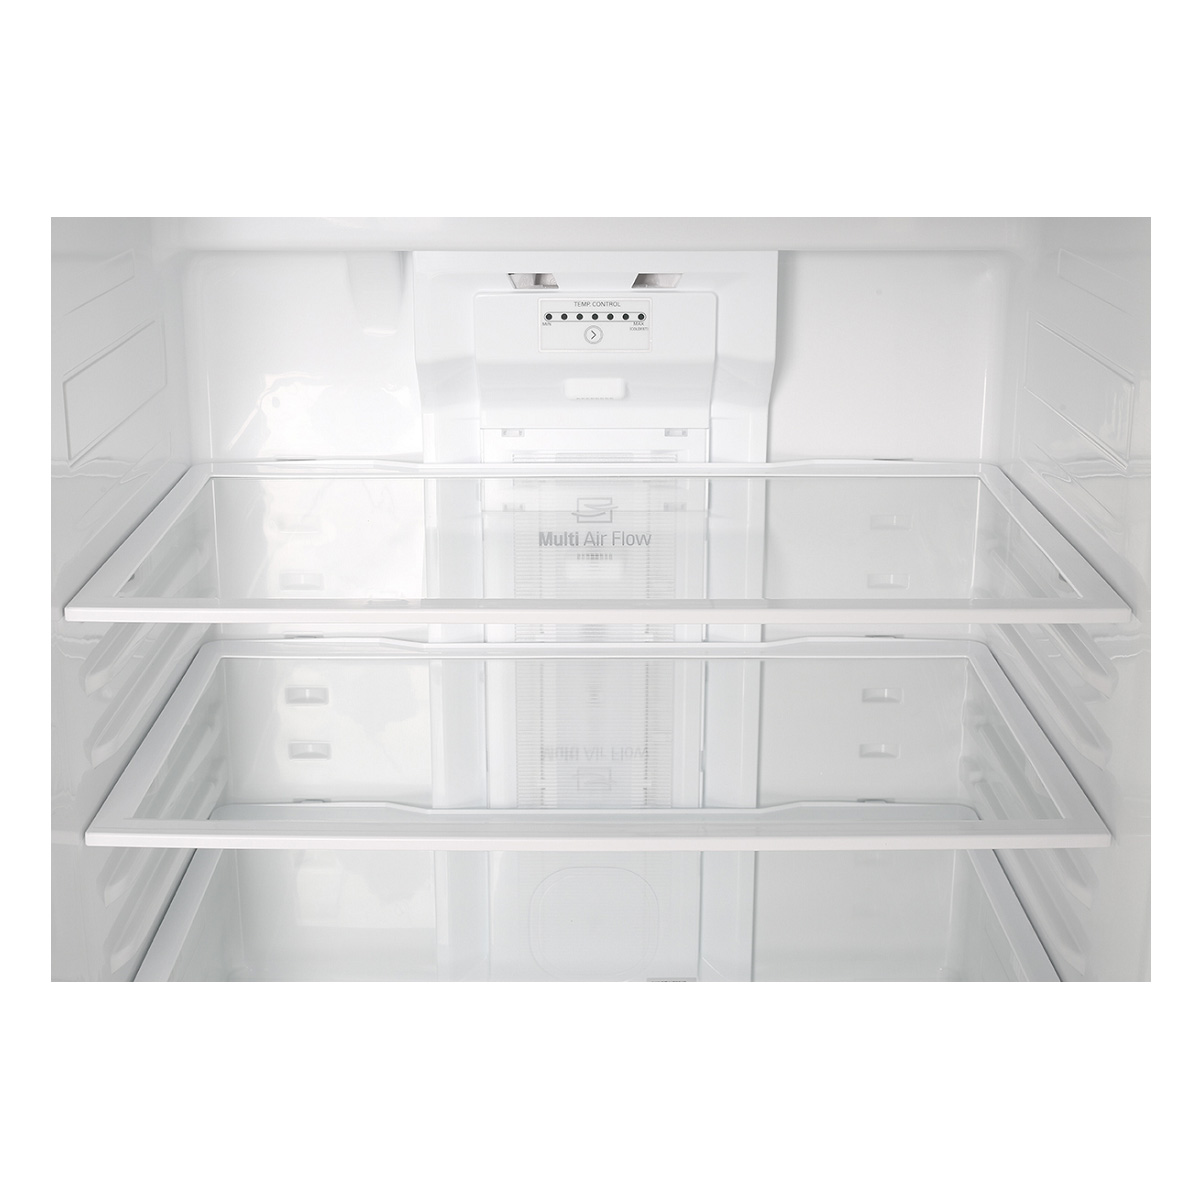 LG GT-515BPL 515L Top Mount Fridge 35589